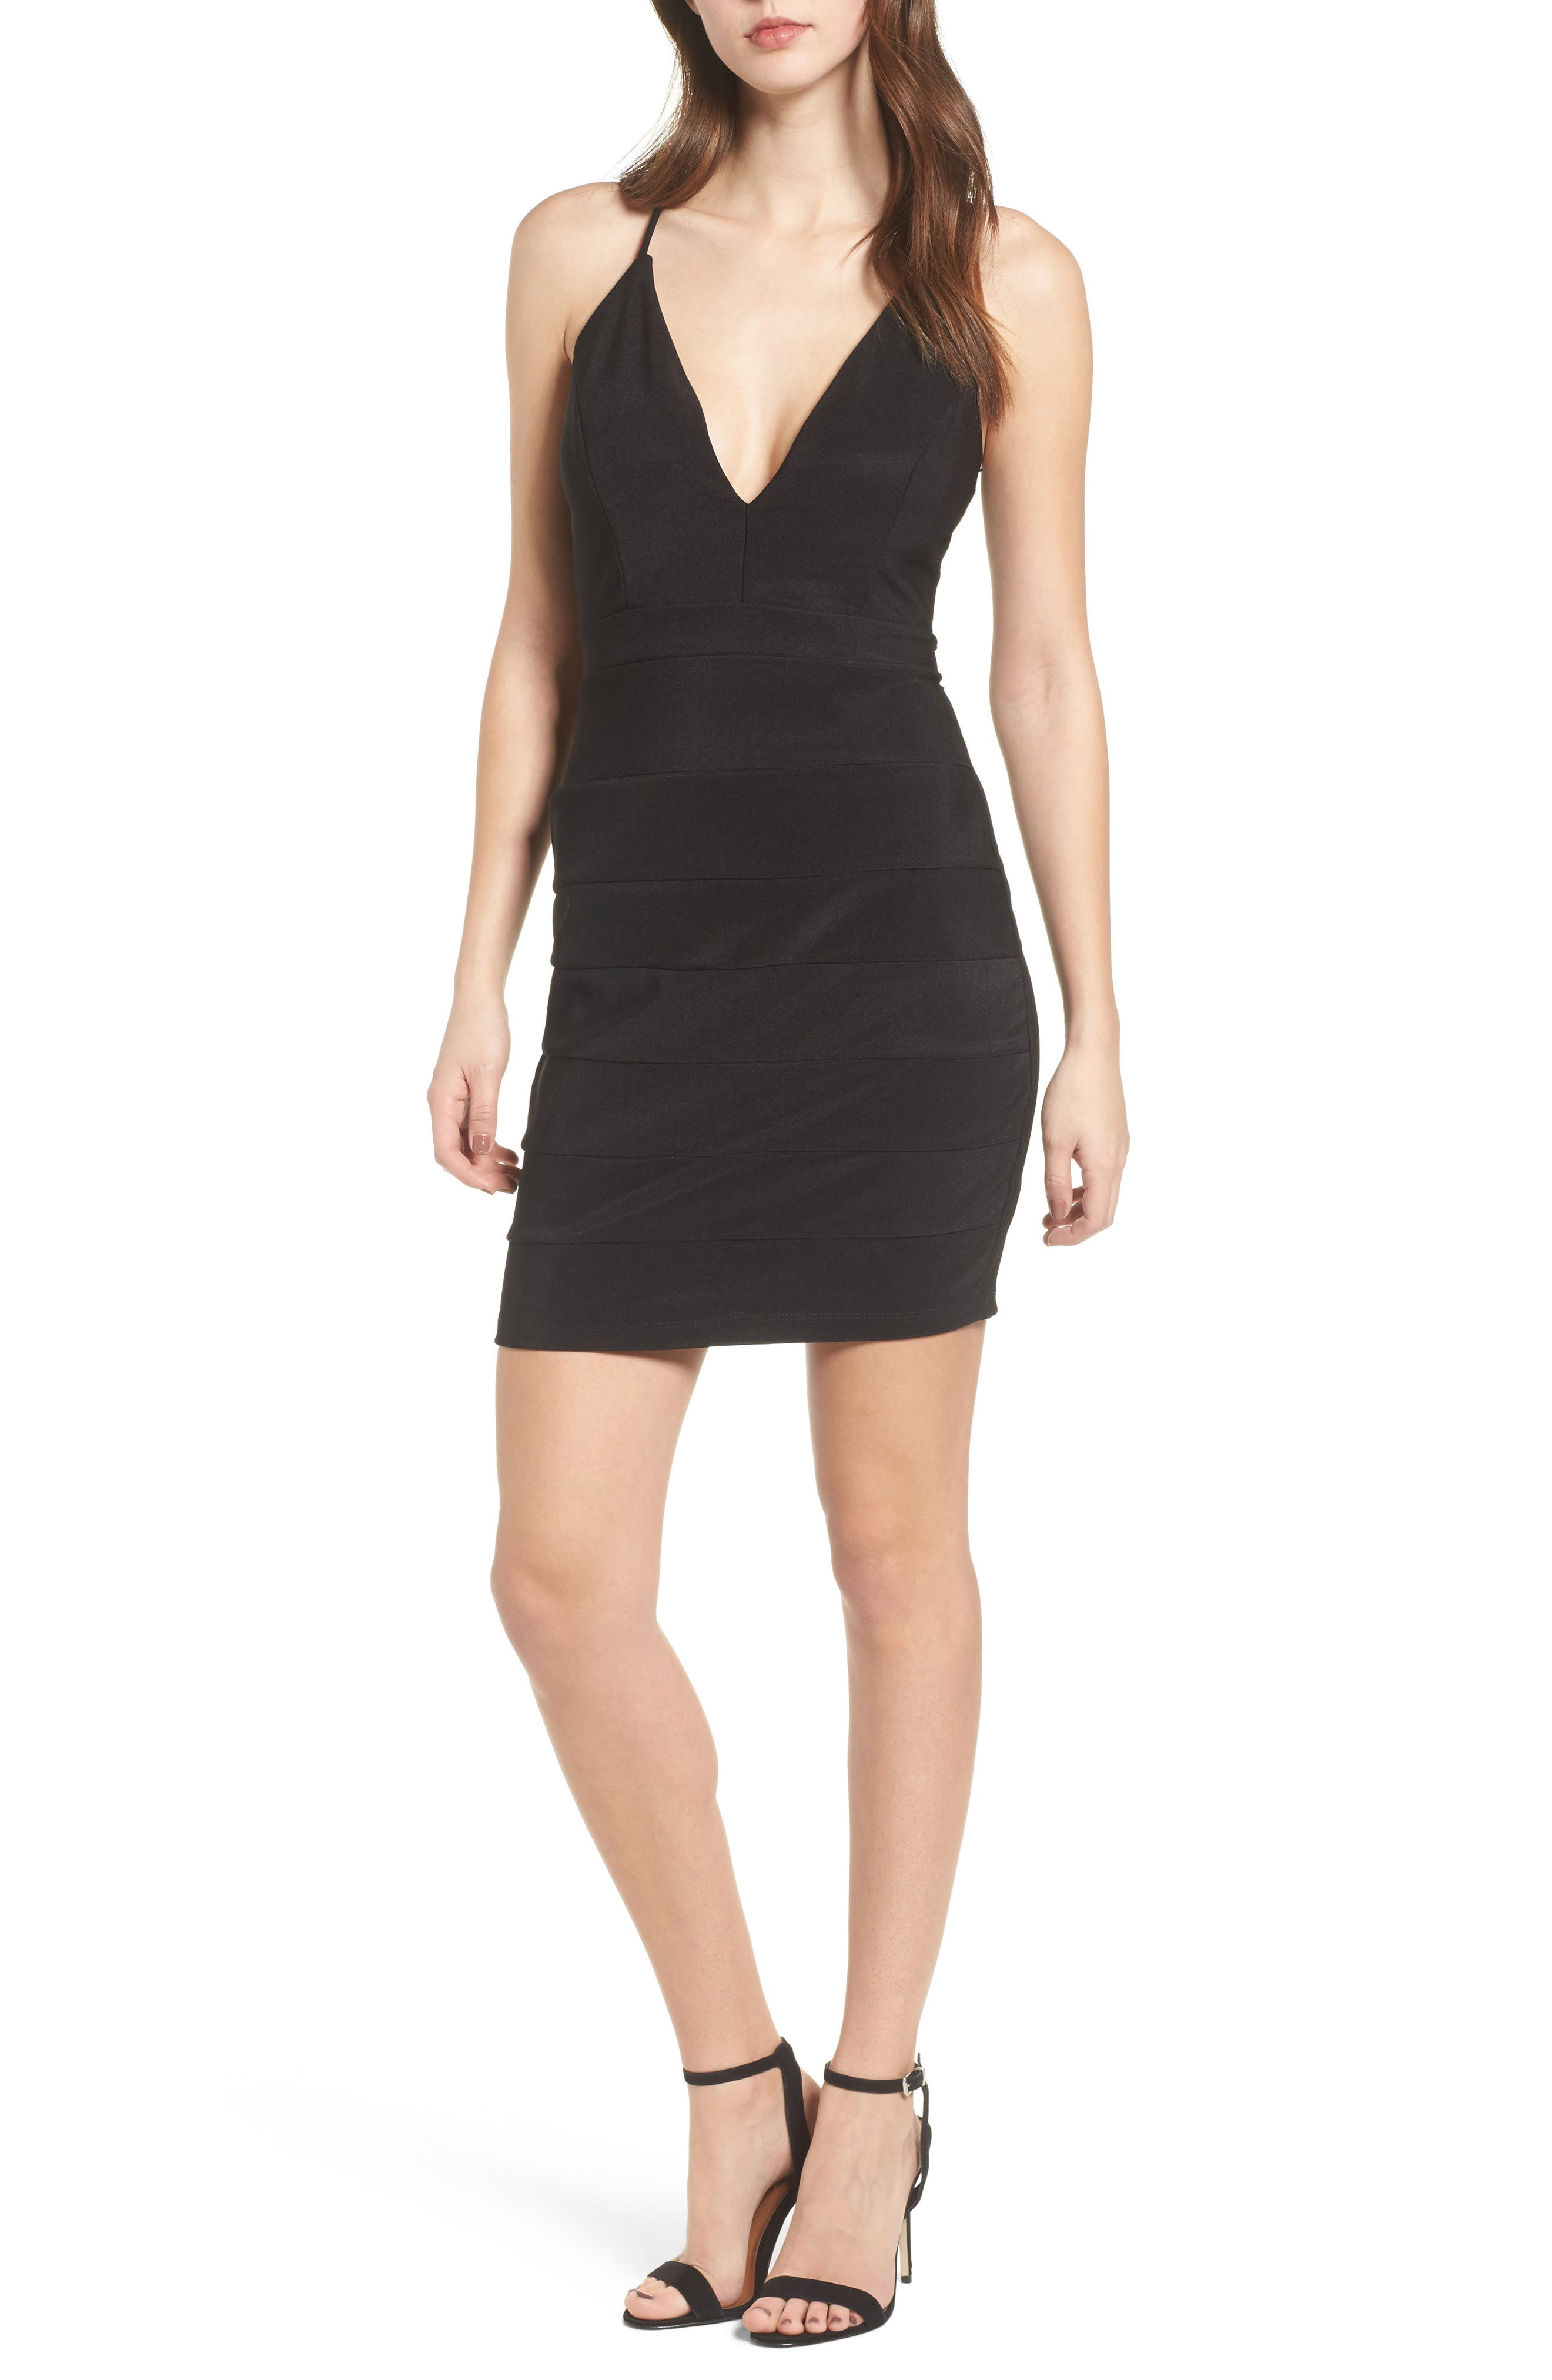 LOVE, NICKIE LEW, Lace Back Body-Con Dress, Main thumbnail 1, color, 001